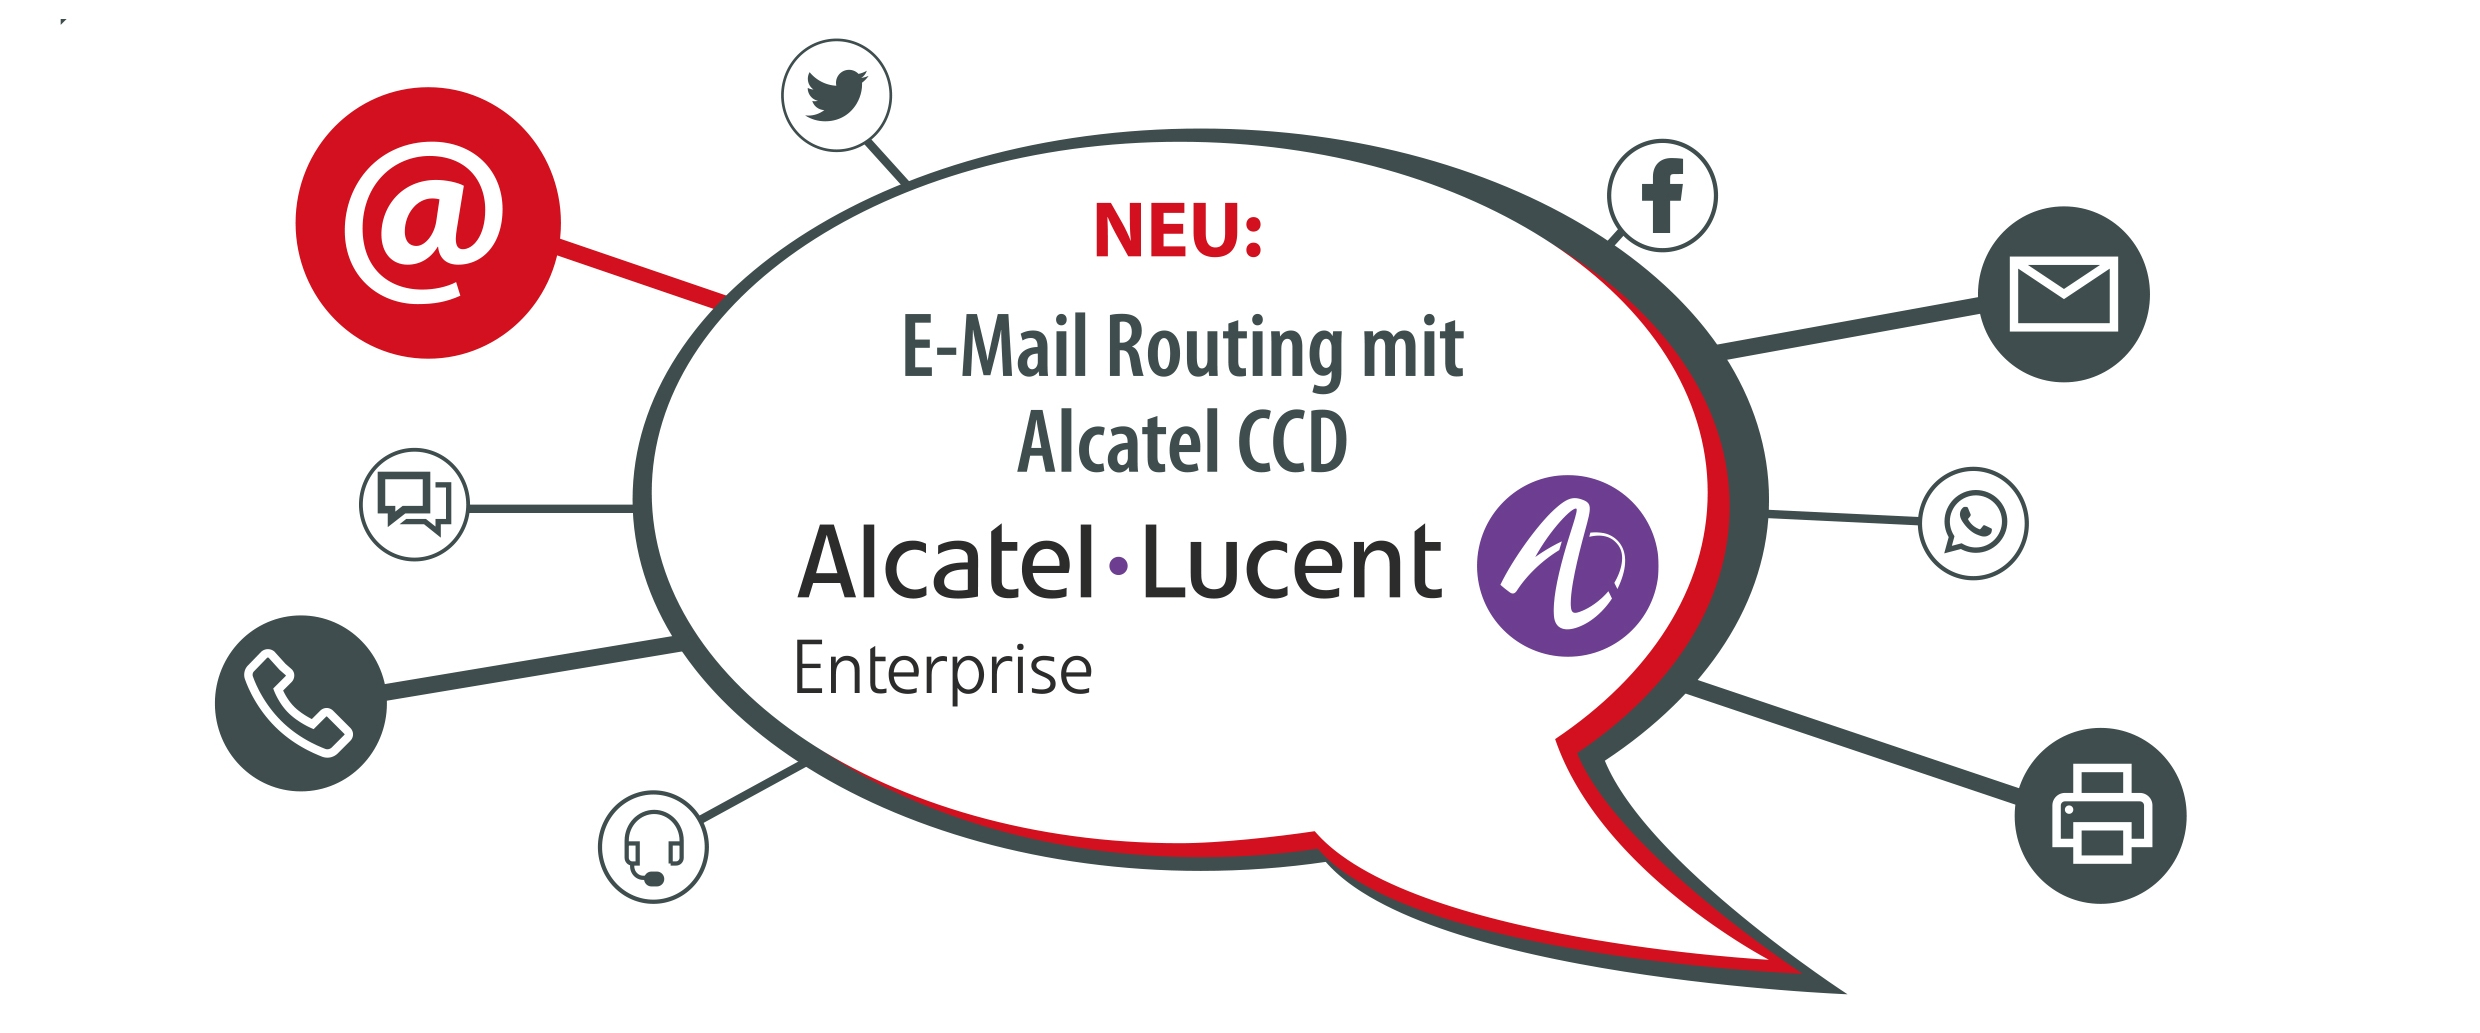 Medien-Routing mit Alcatel CCD